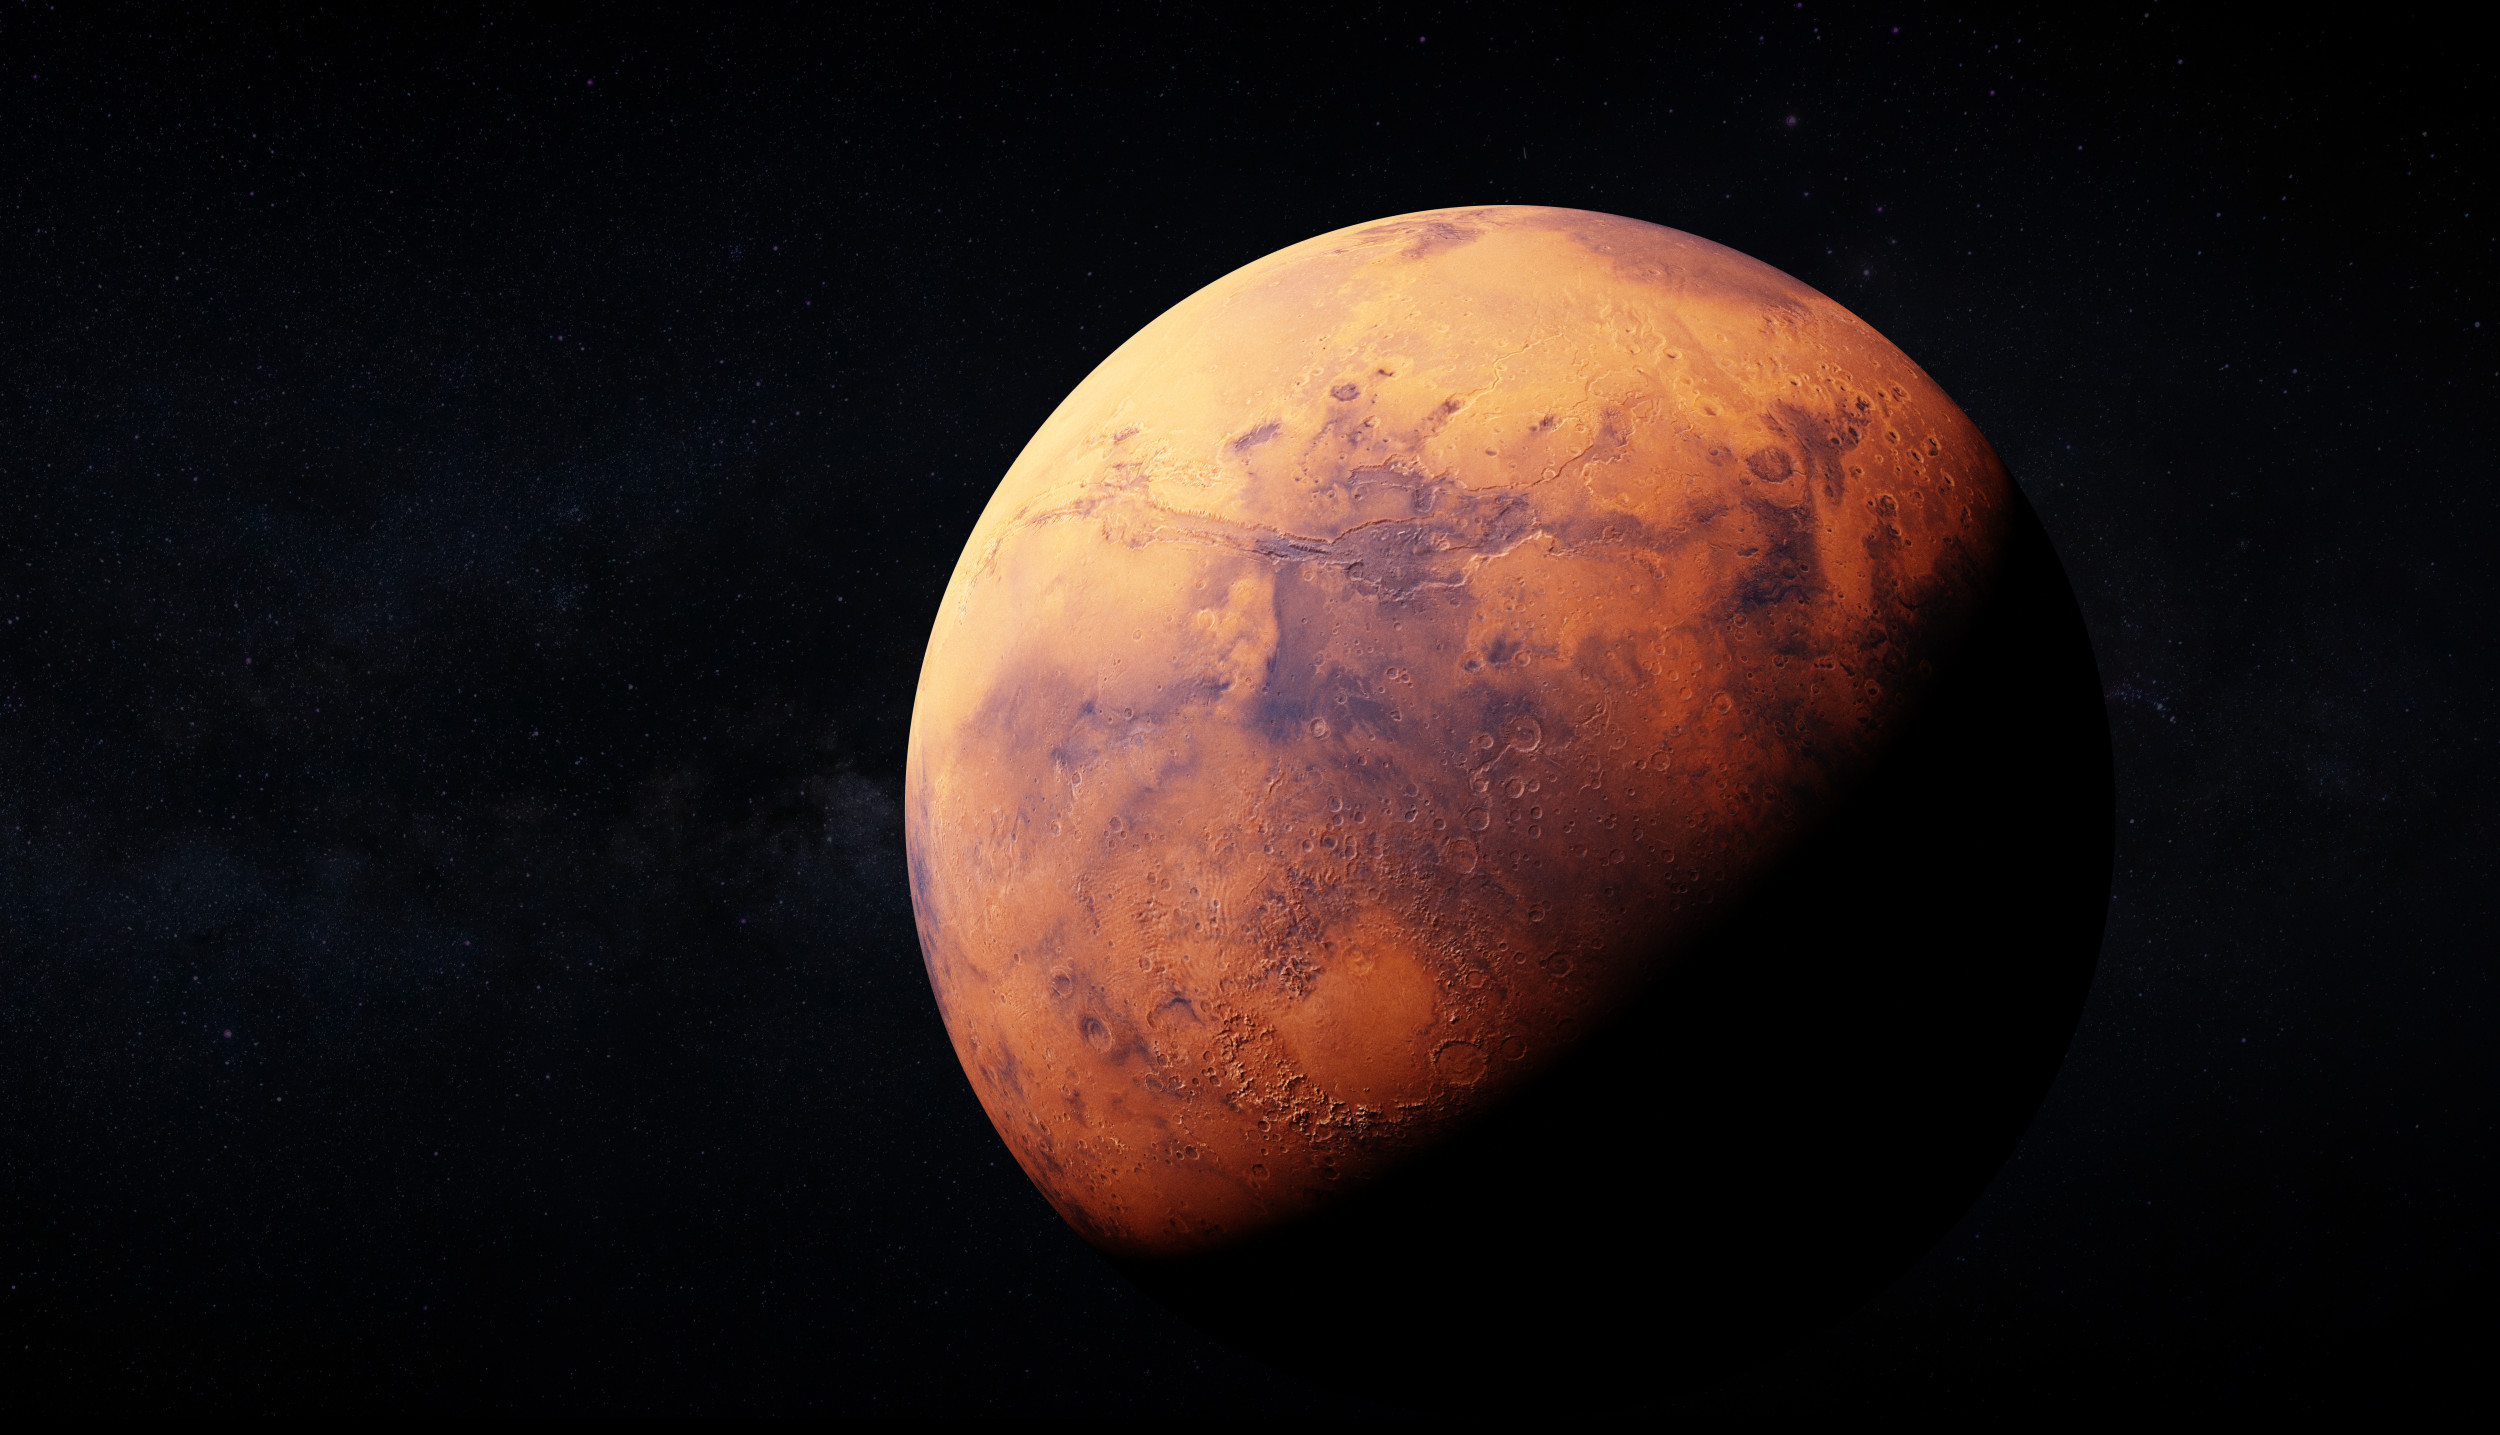 How to send your name to Mars on NASA's next mission to the red planet